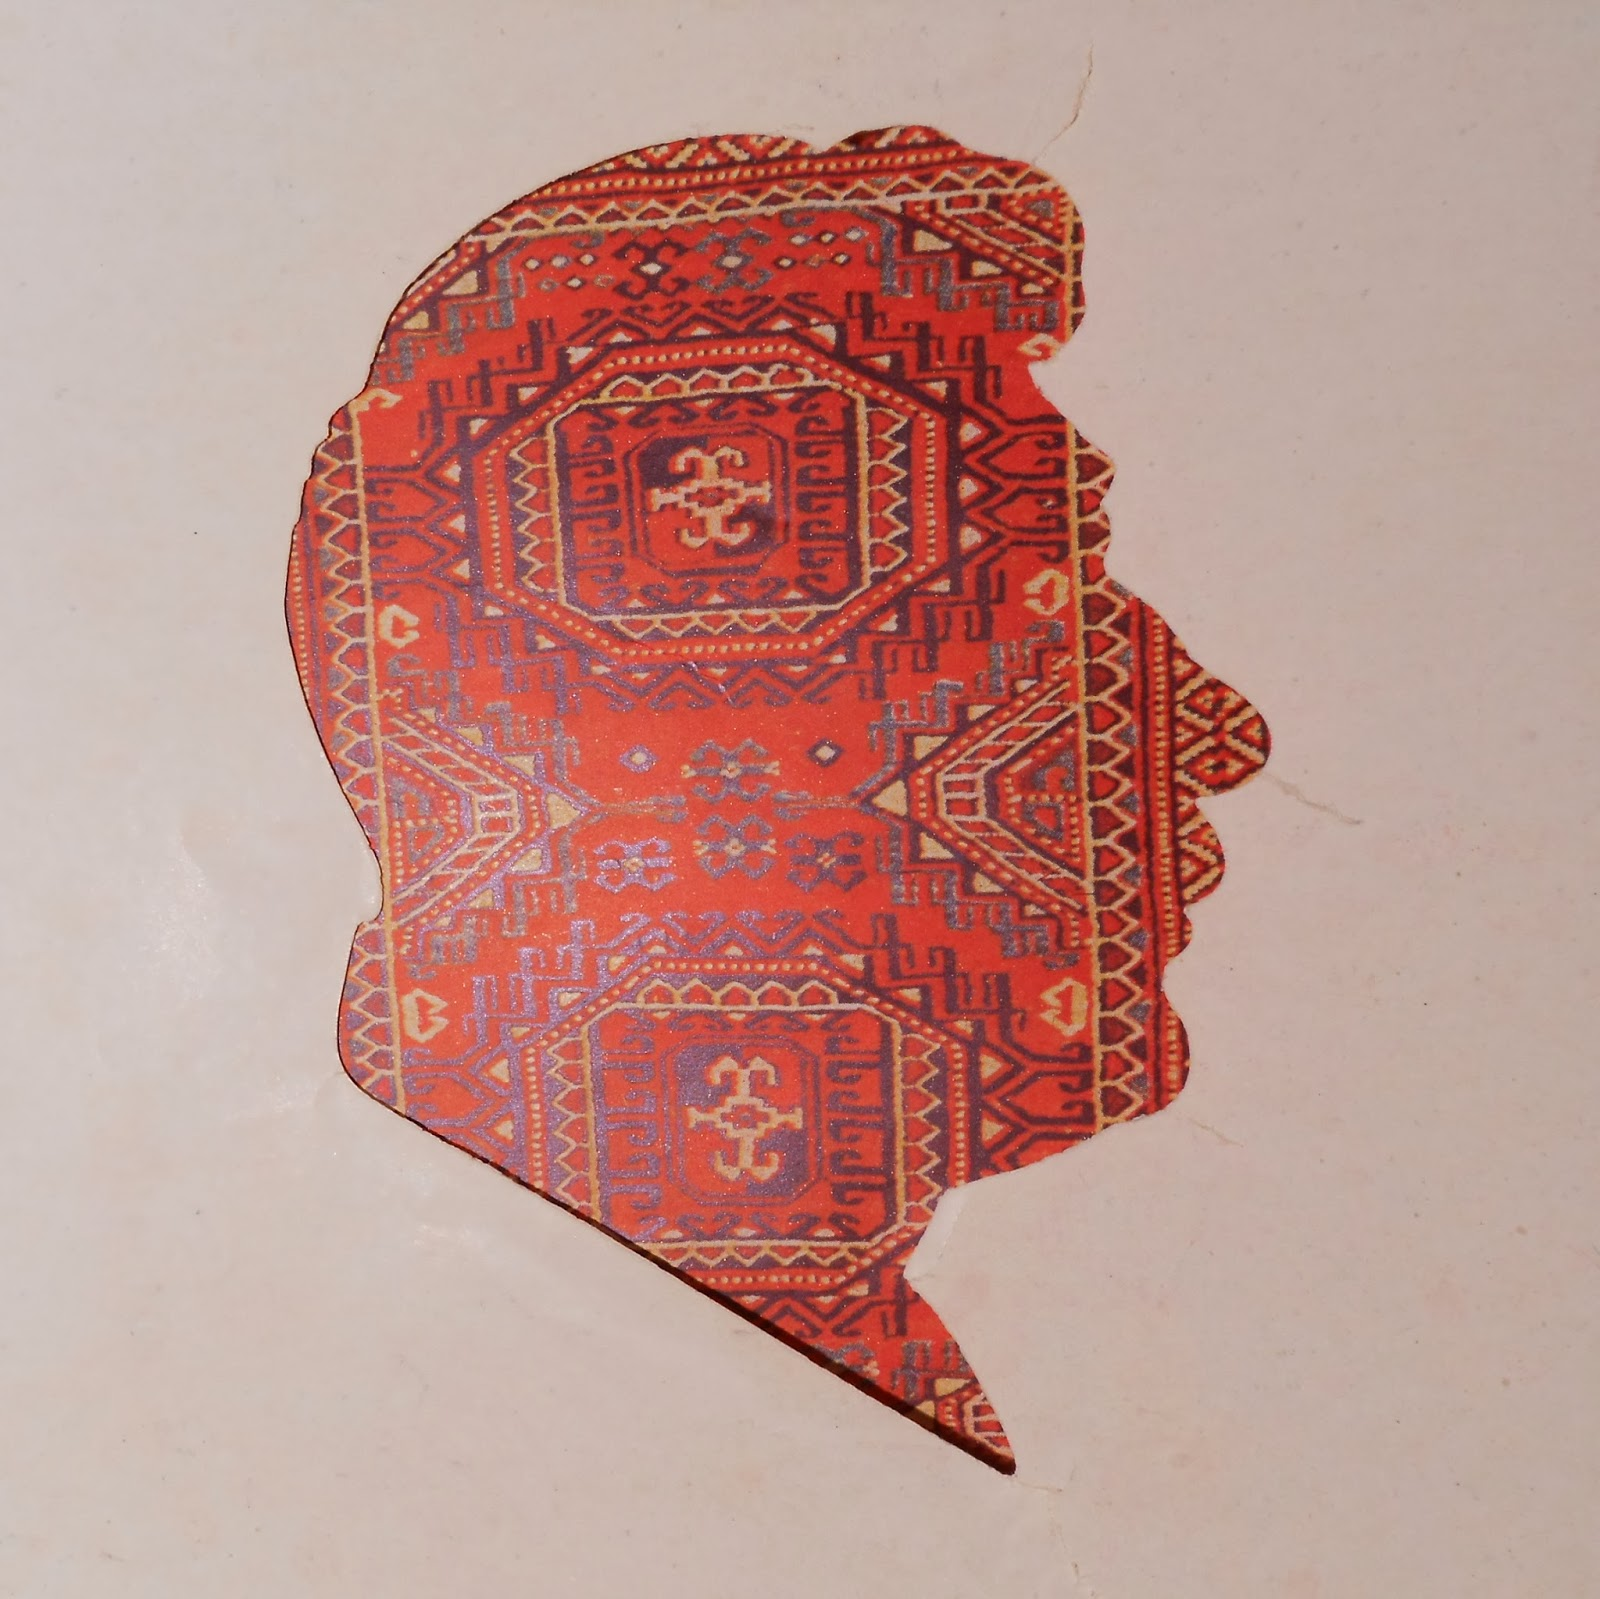 The silhouette of a man's profile, filled in with a red textile pattern.